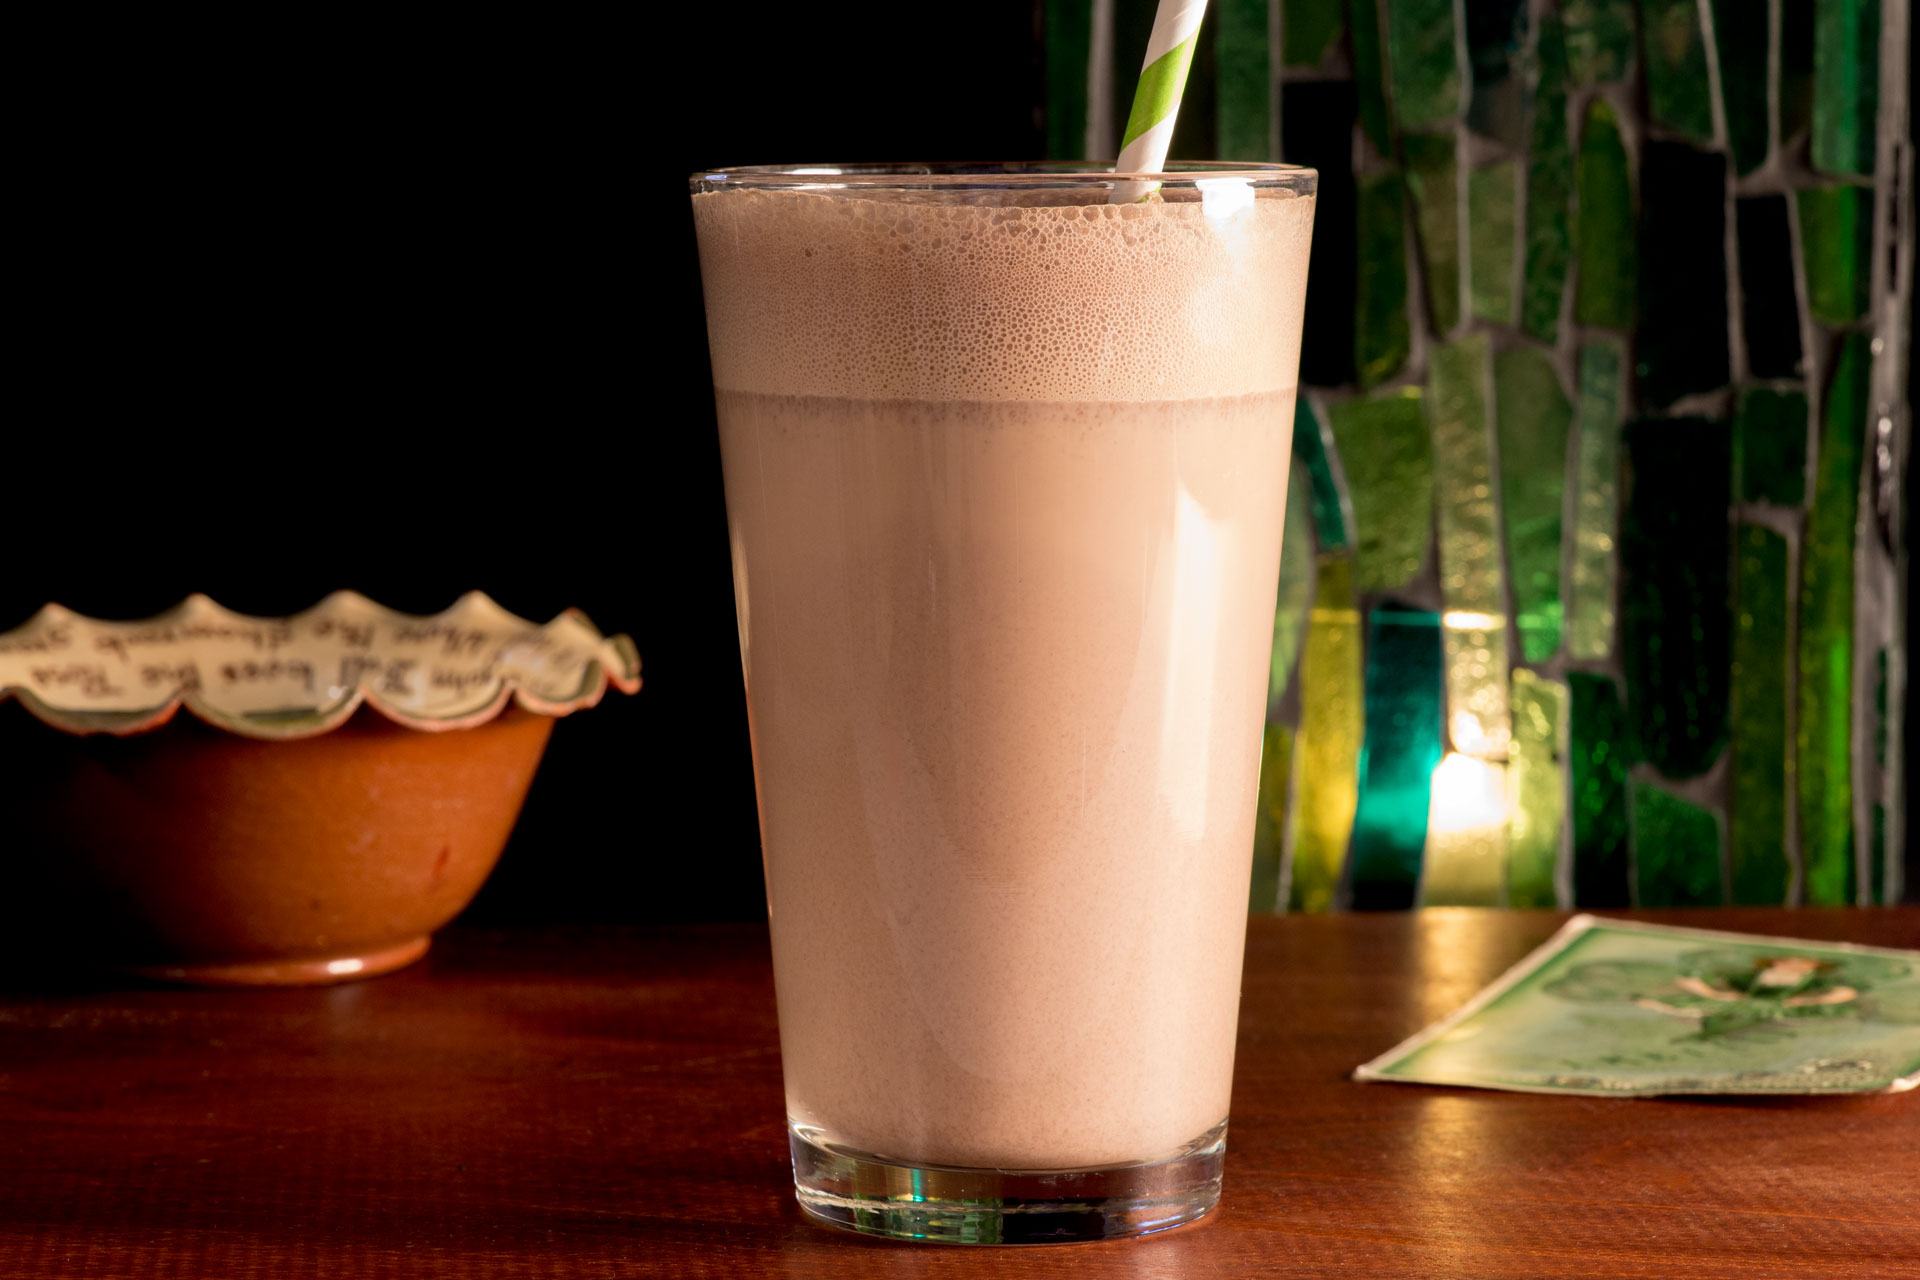 It's an Irish milkshake that will make you believe you have the best seat at the pub. All it takes is 4 ingredients for an indulgent dessert beverage.